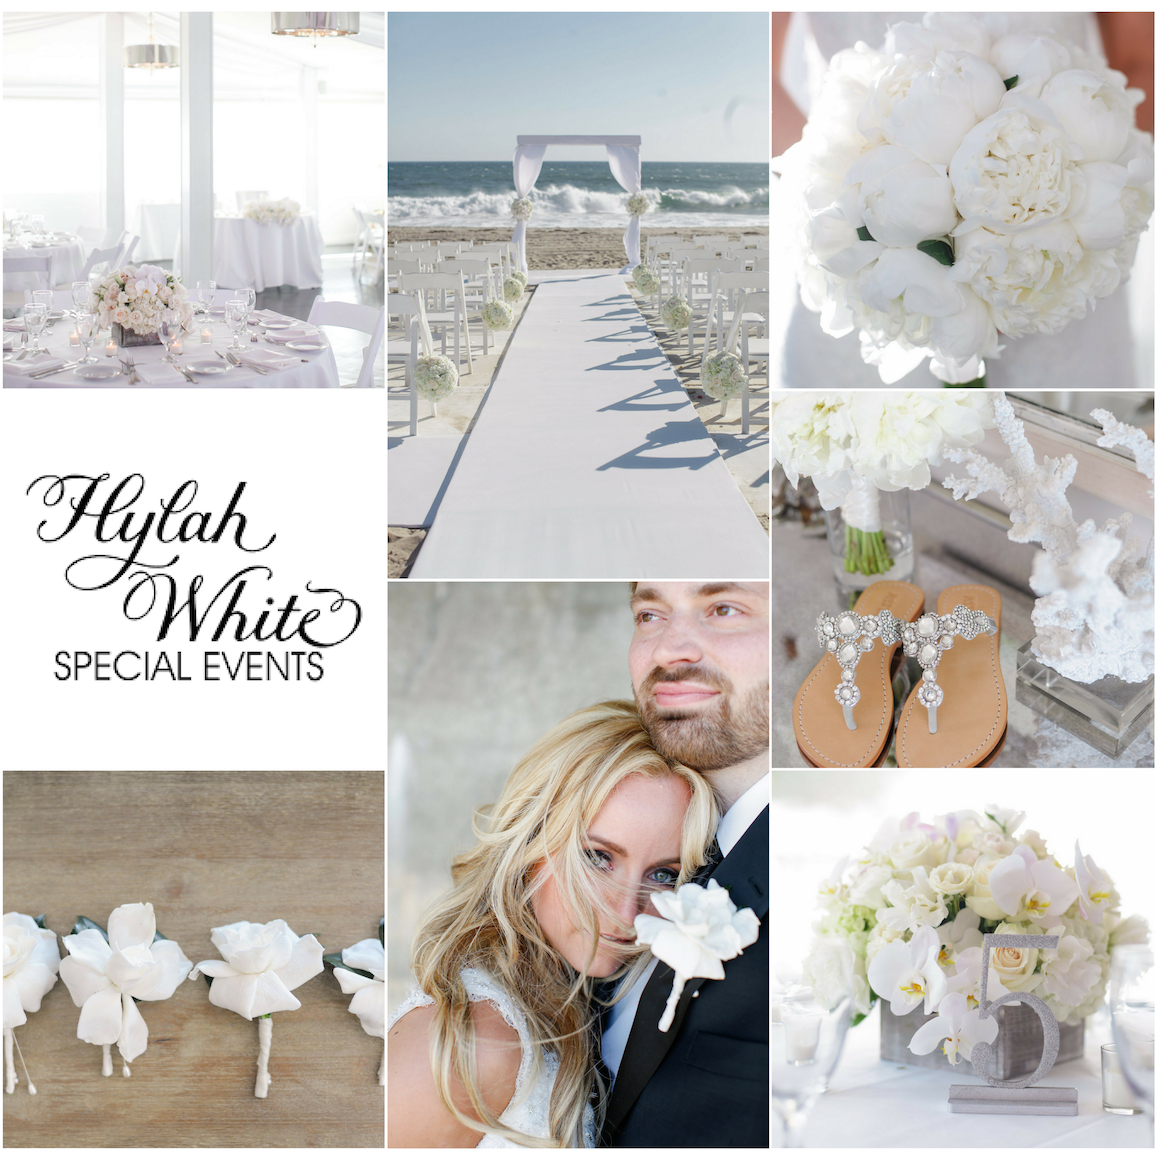 Romantic Beach Wedding, Hylah White, White Wedding, White Wedding Reception, White Beach Wedding